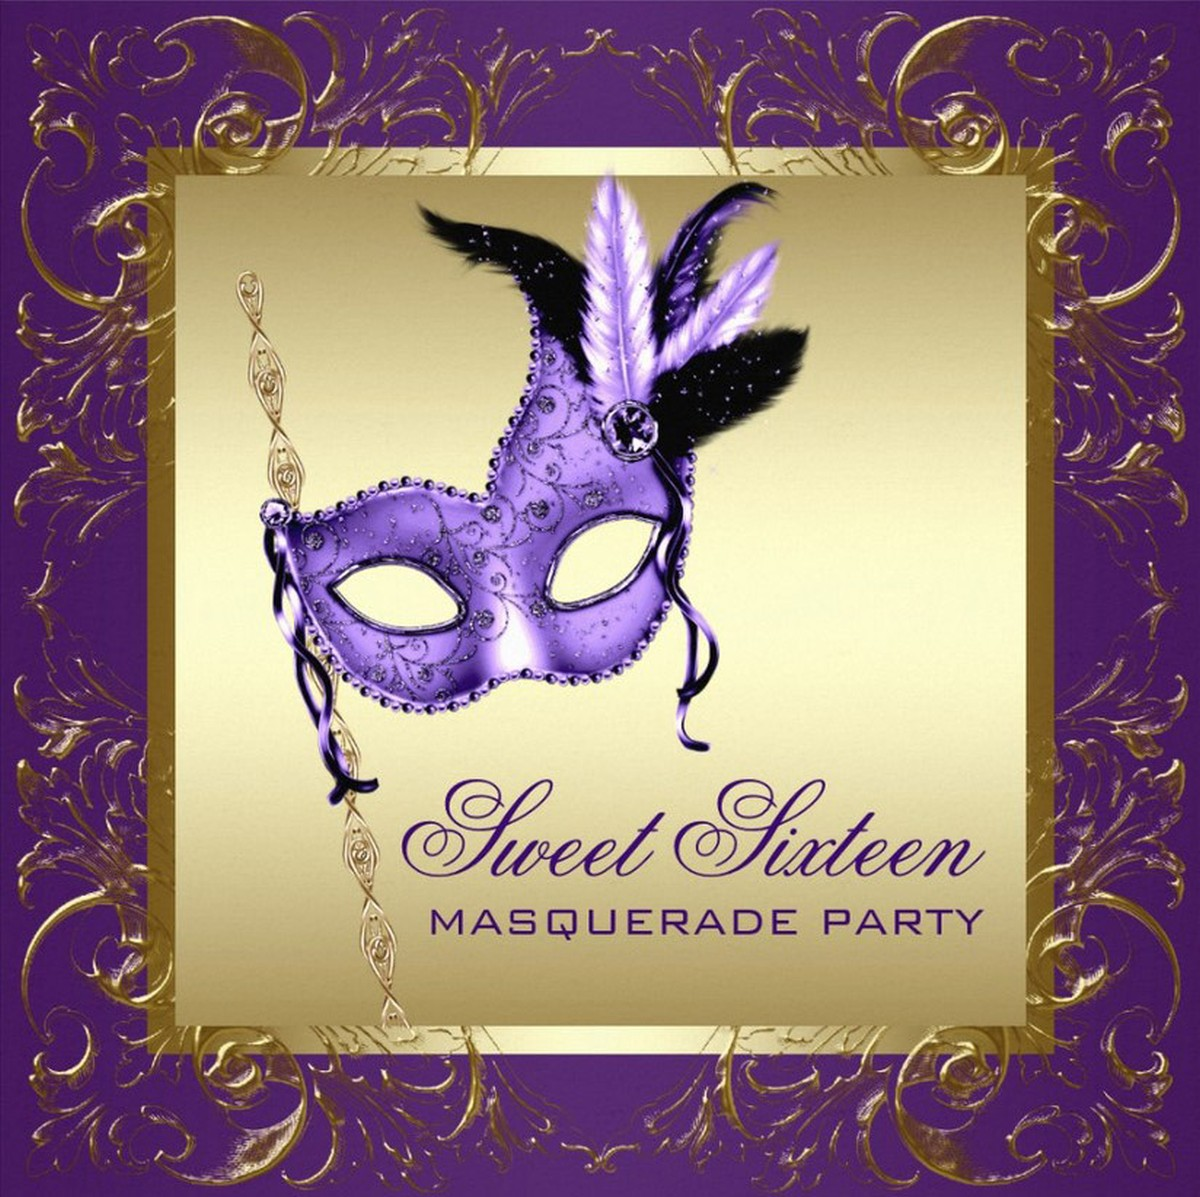 photograph relating to Free Printable Masquerade Invitations referred to as Free of charge Printable Masquerade Invitation Templates Invites